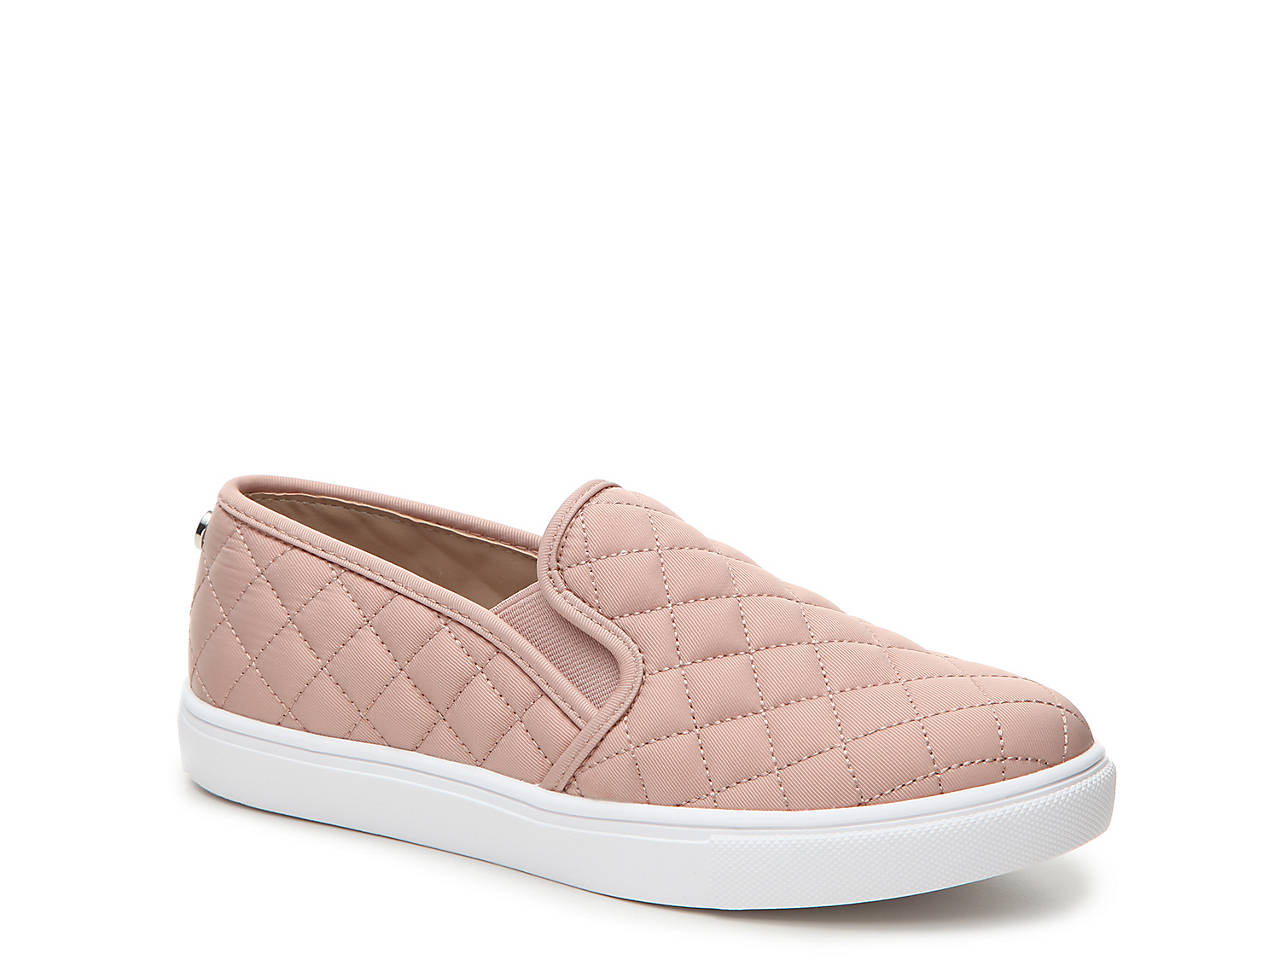 2518738a42a Steve Madden Ecentrcq Slip-On Sneaker Women s Shoes